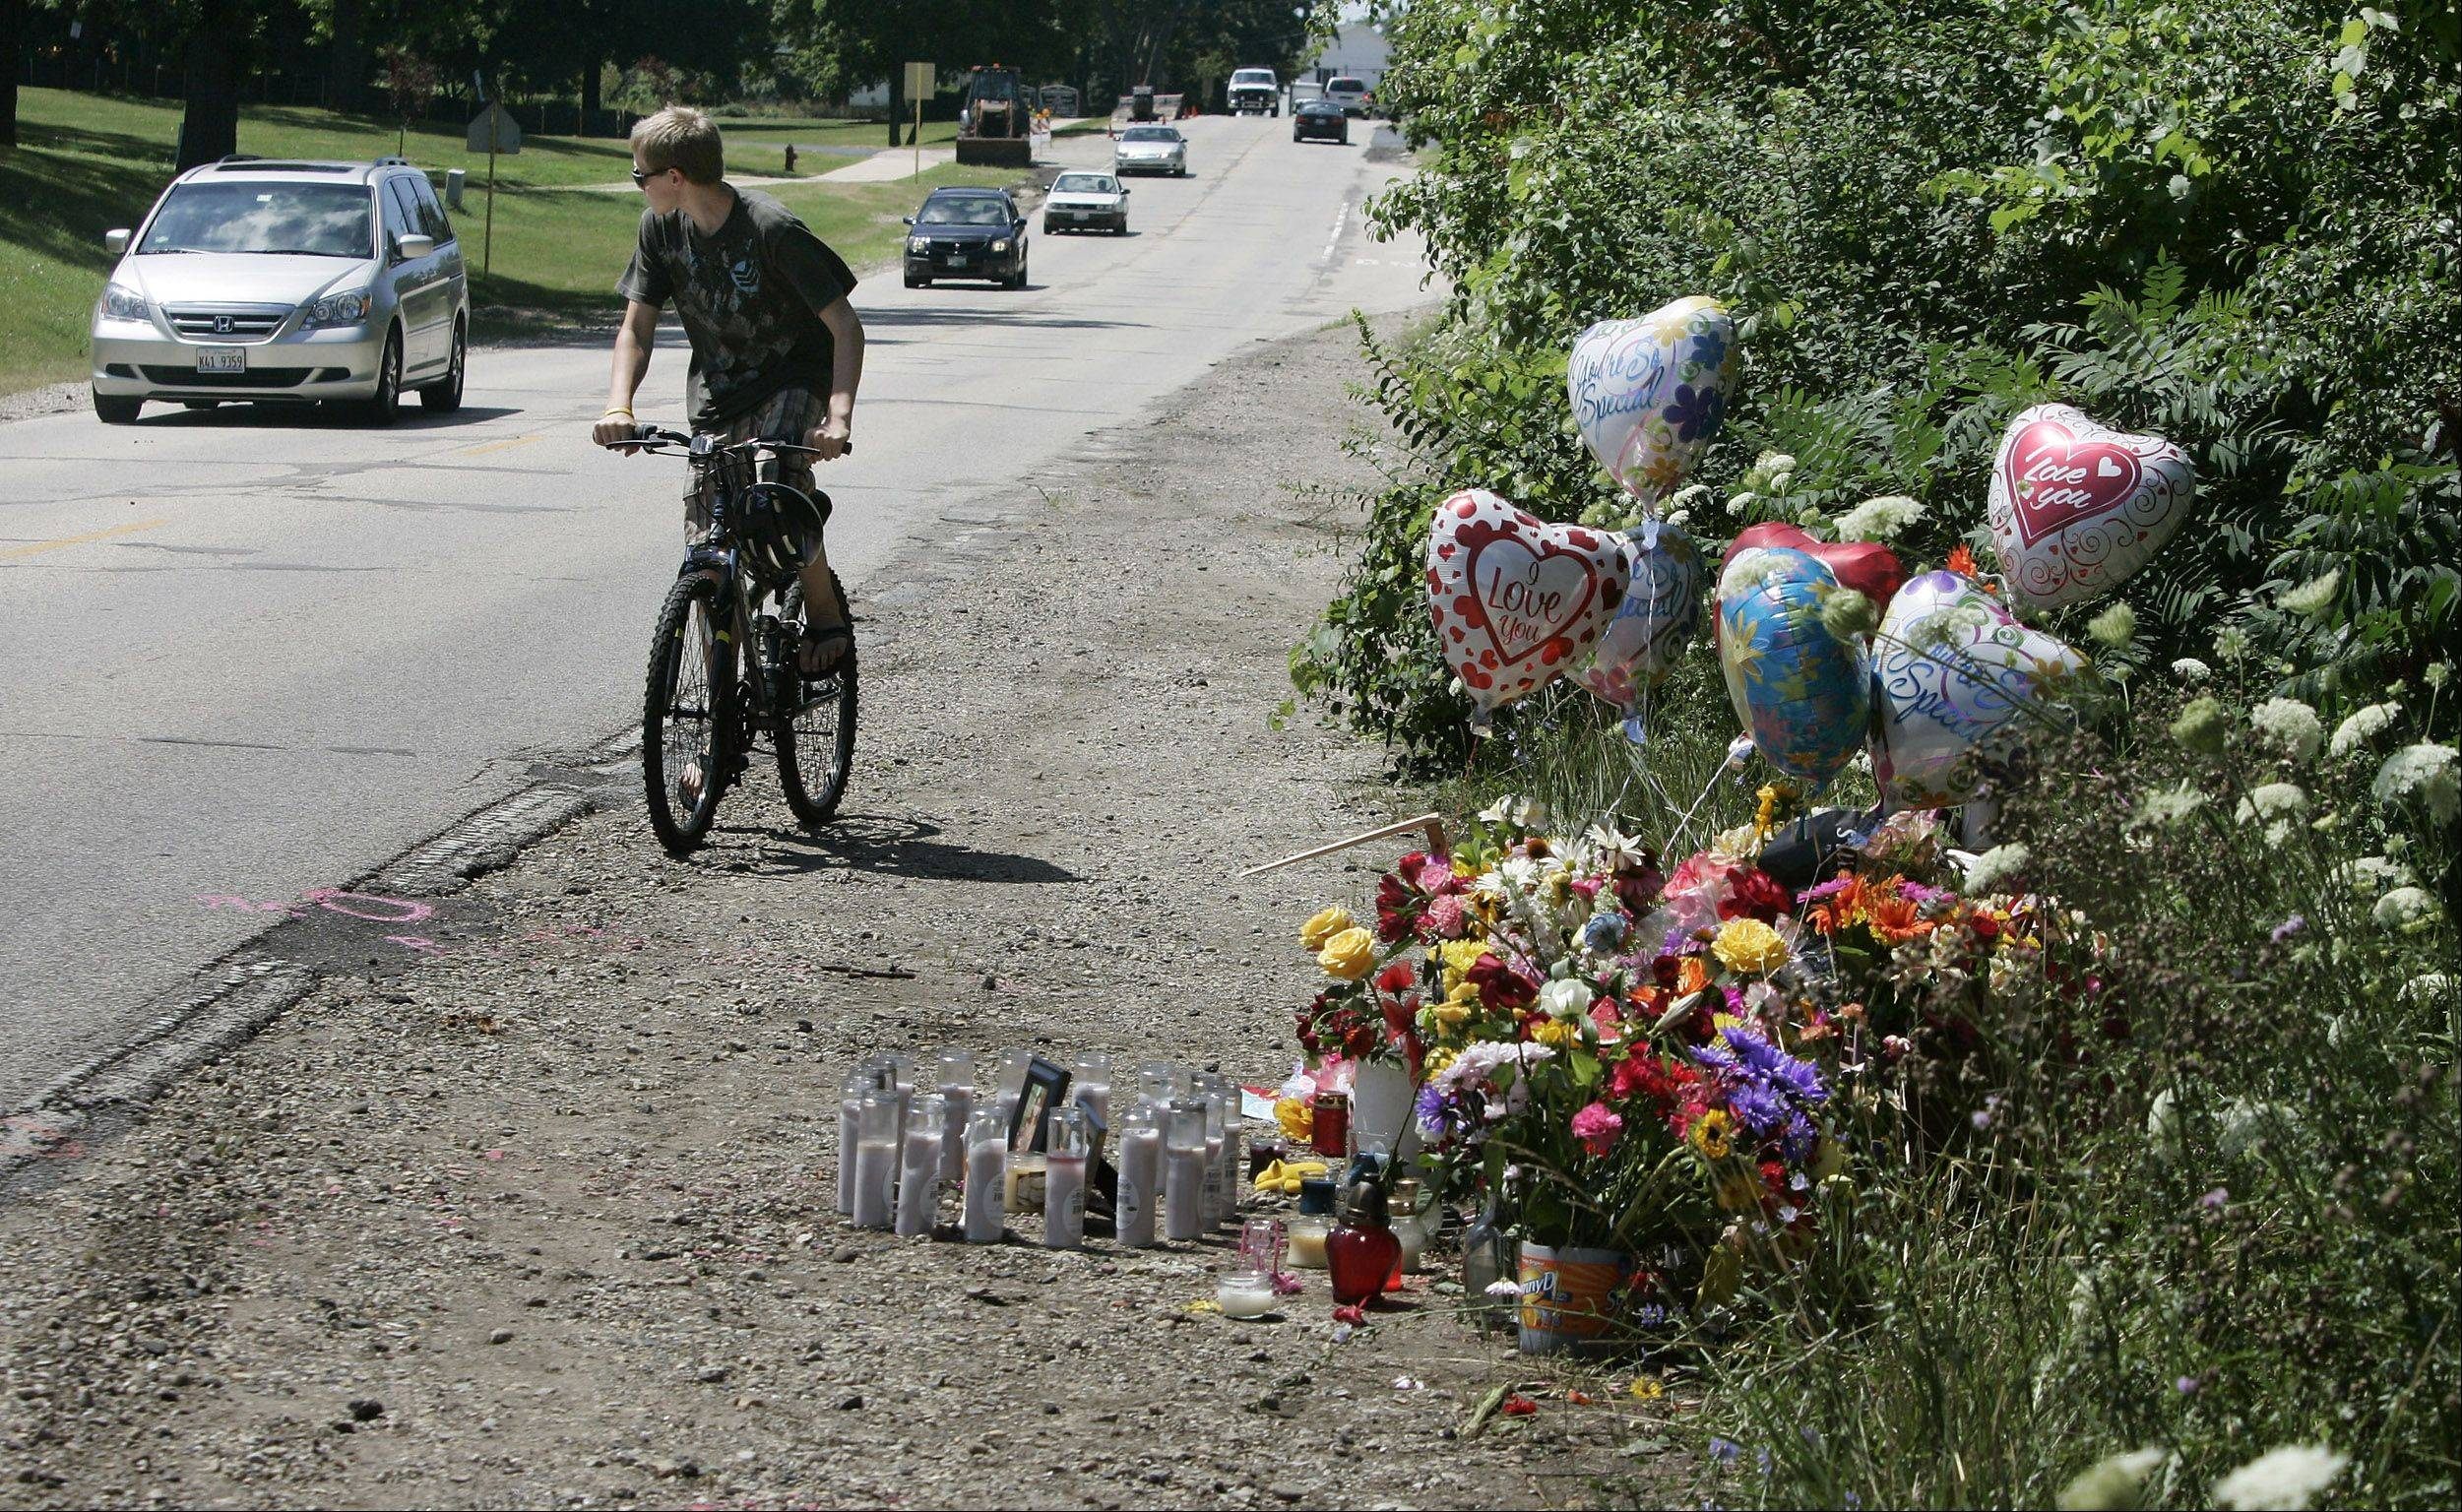 A bicyclist watches out for traffic as he rides on the shoulder near a memorial set up along Church Street in Lake Zurich for hit-and-run victim Gabriella Drozdz. The Lake Zurich teenager was killed and two friends were injured when they were hit by an SUV Friday night as they walked to Alpine Fest.